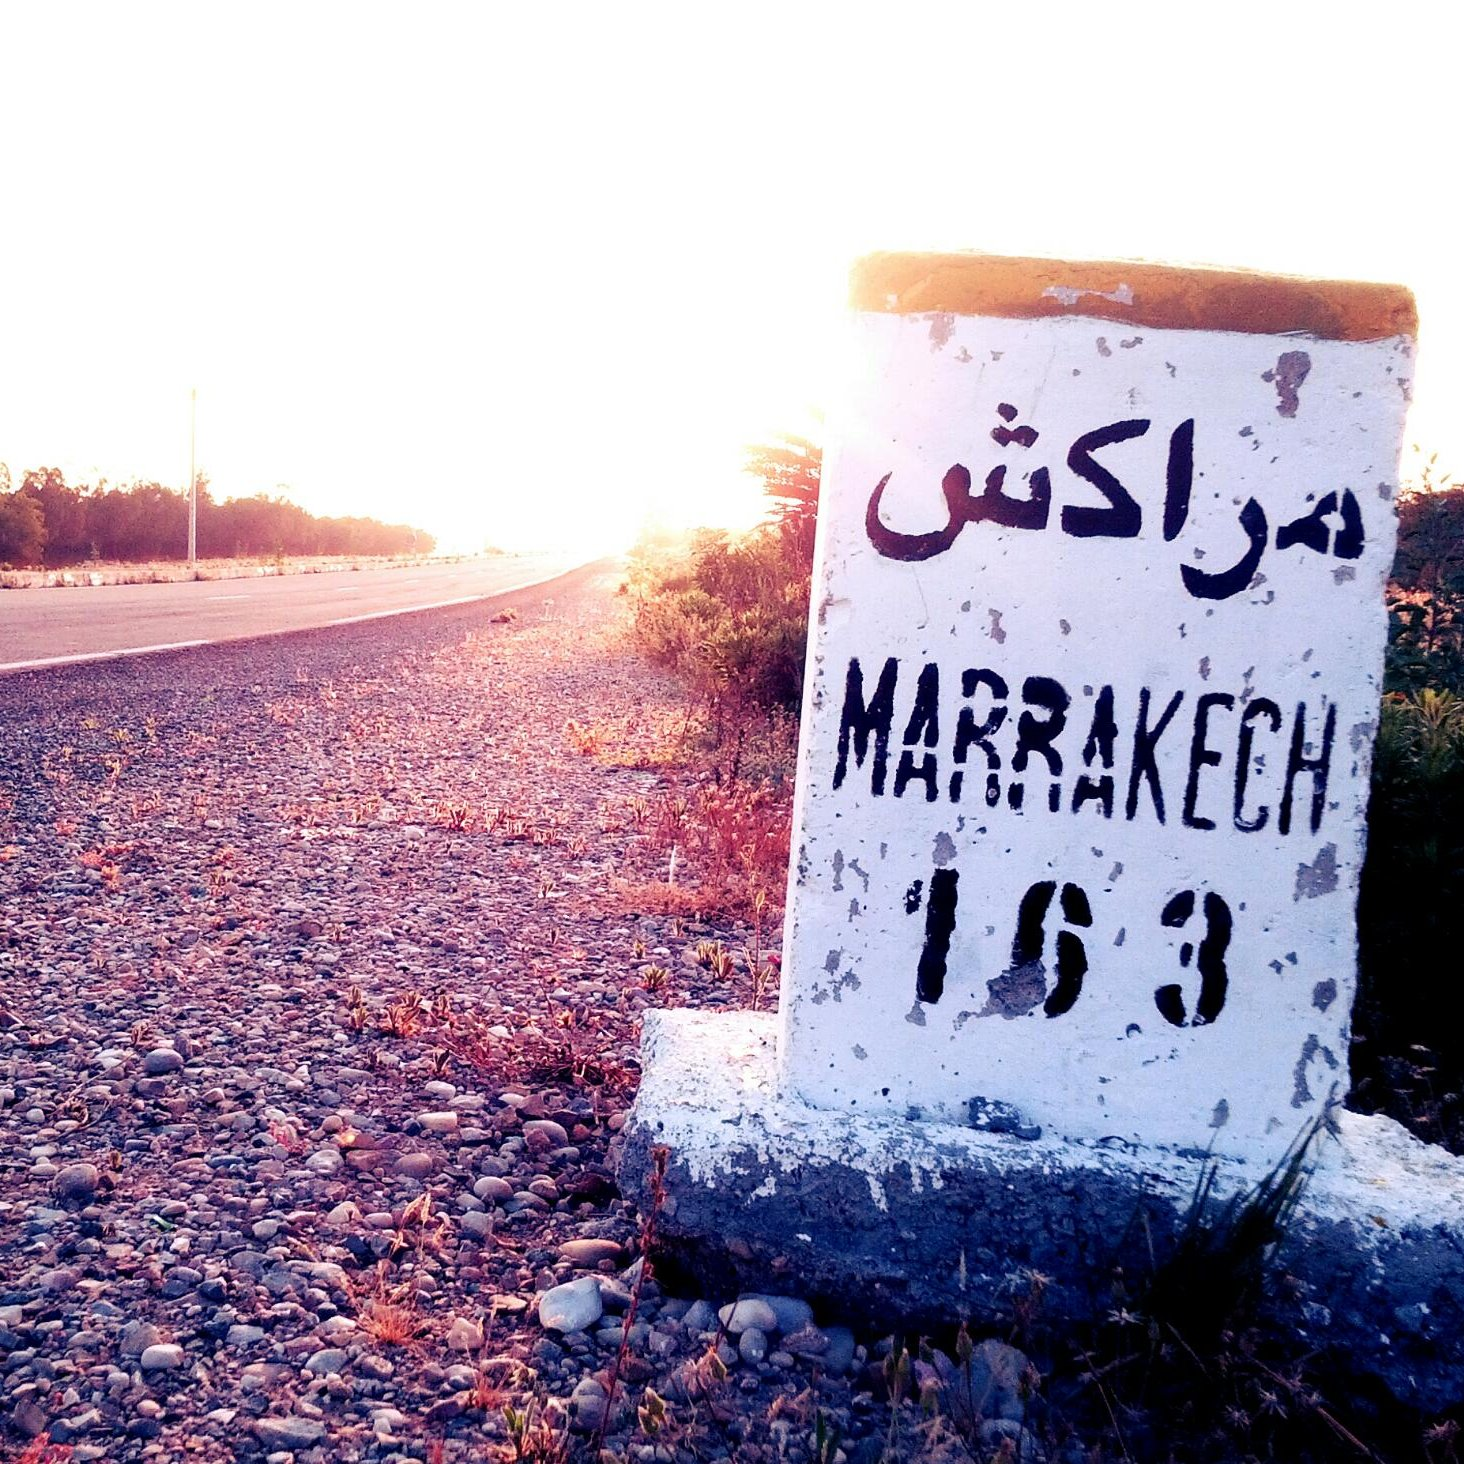 marrakech road marker.jpg